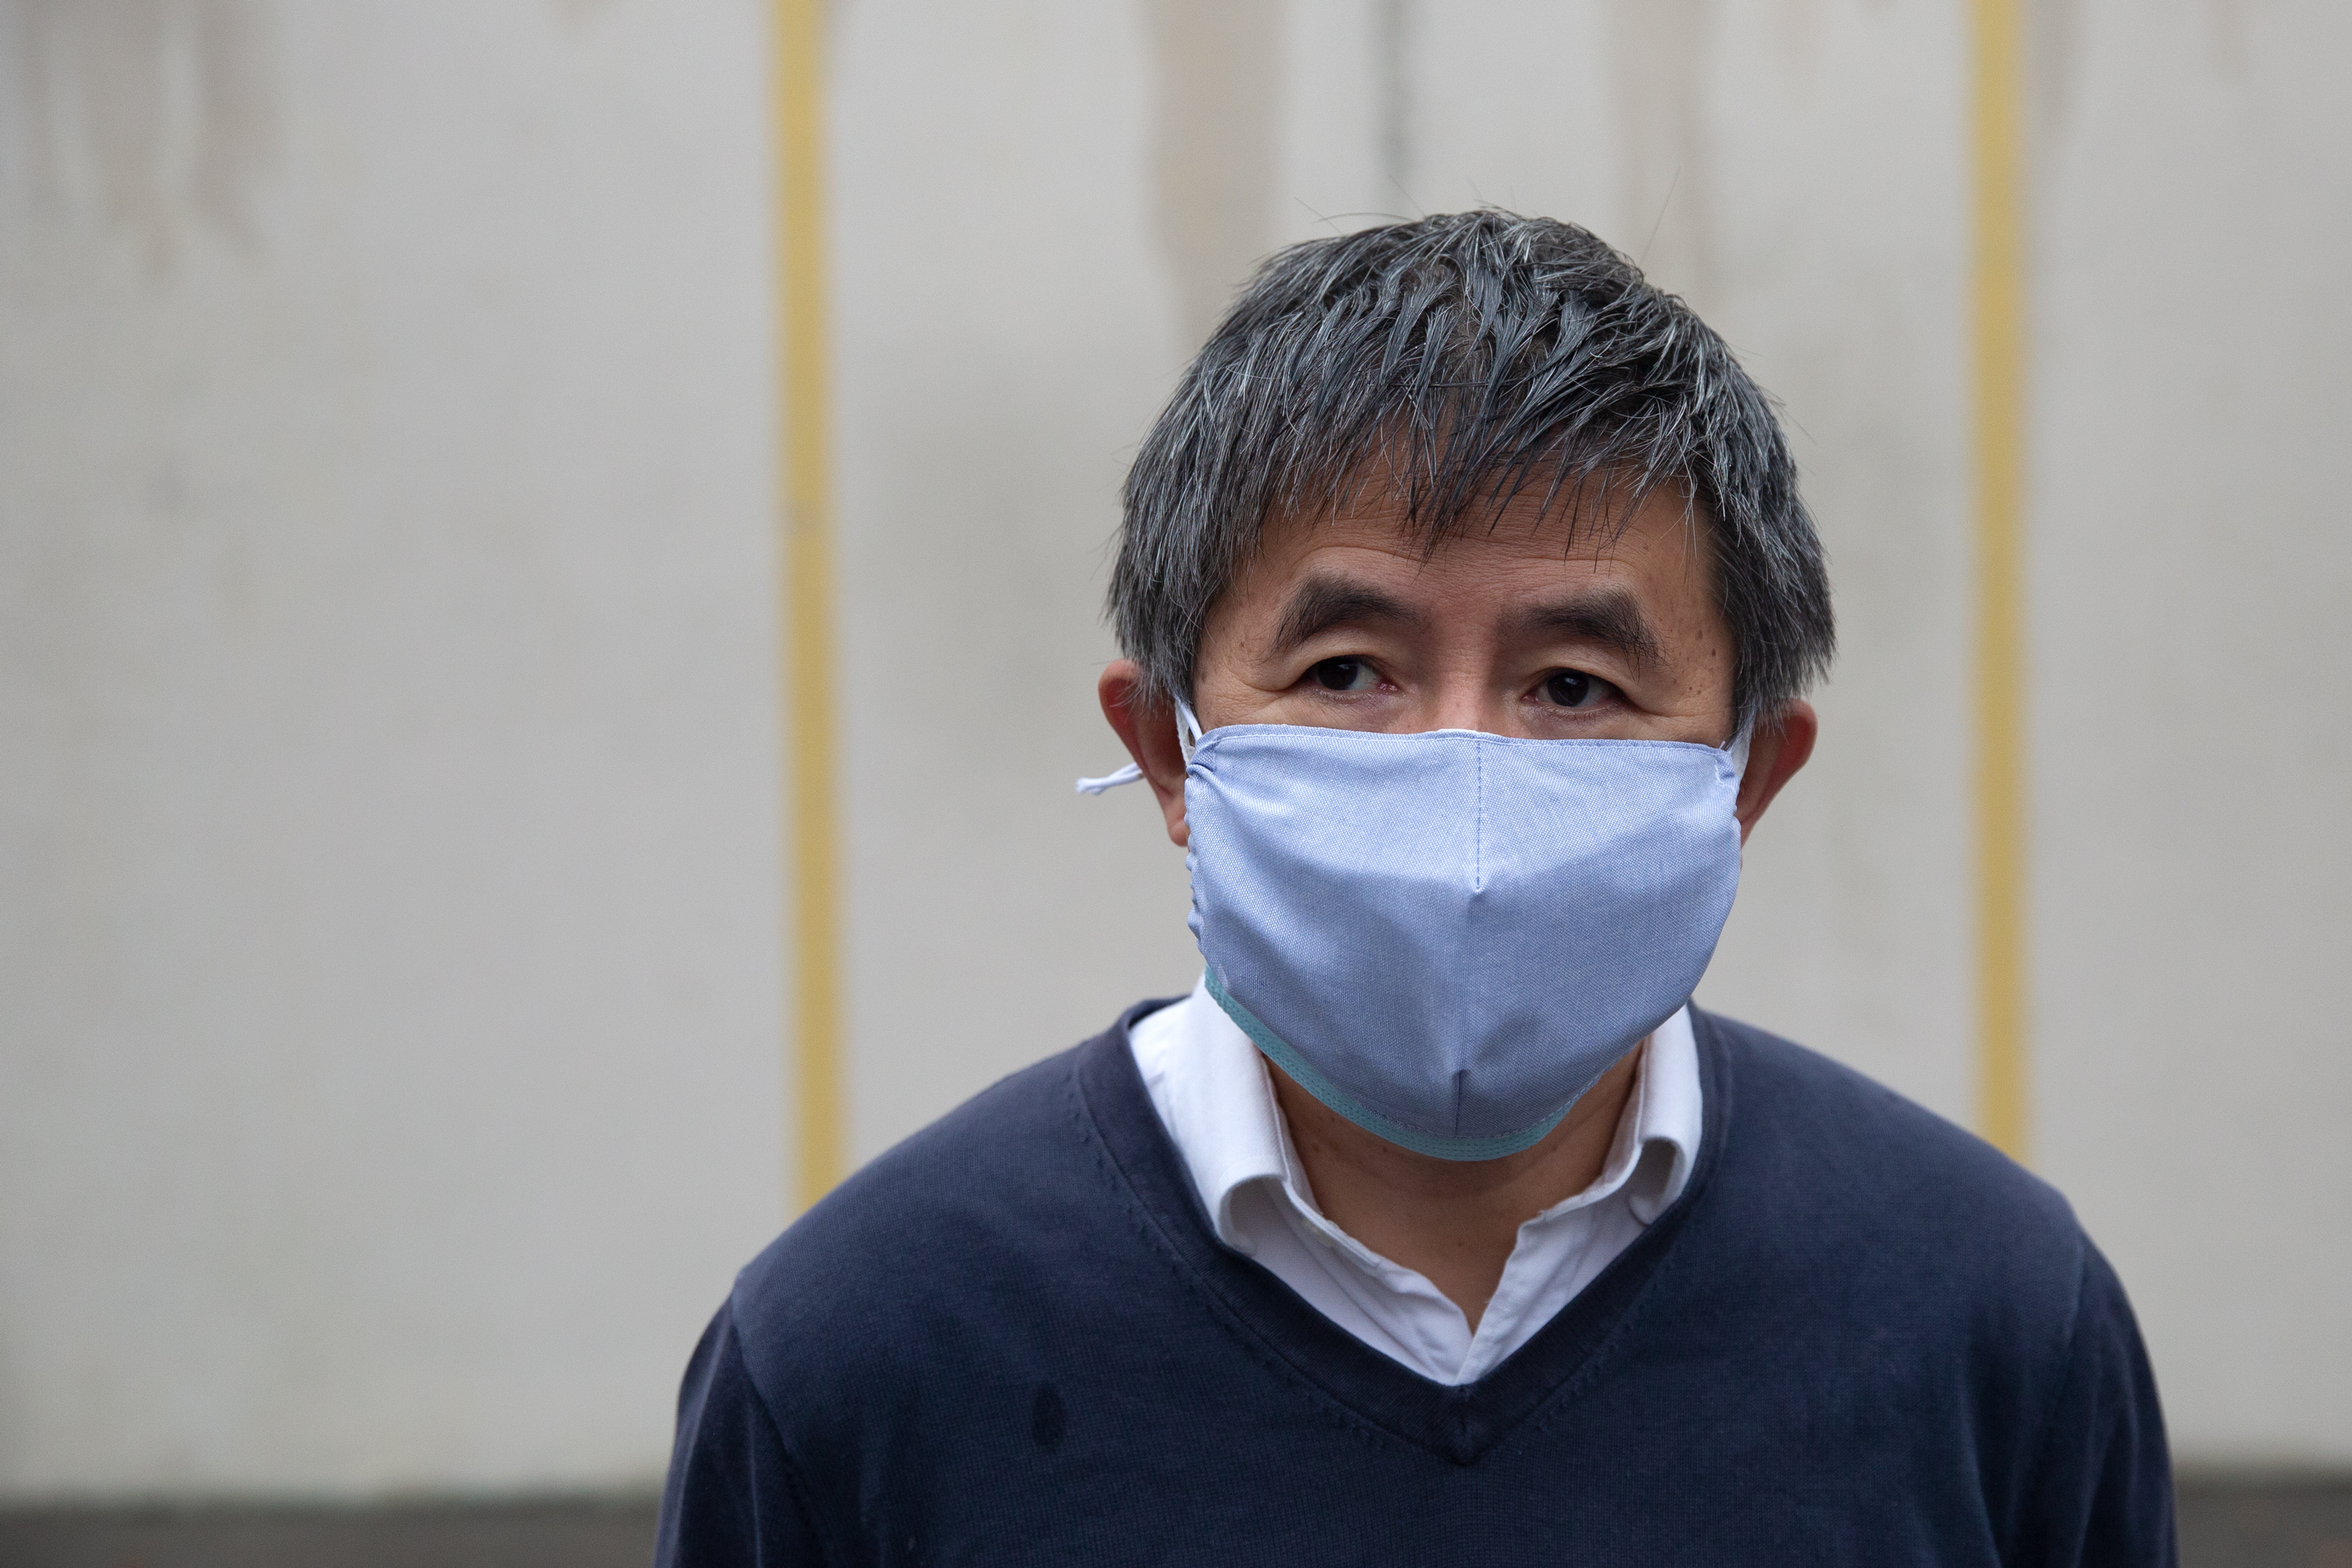 Chinese dissident and Queens resident Wan Yanhai, Oct. 28, 2020.